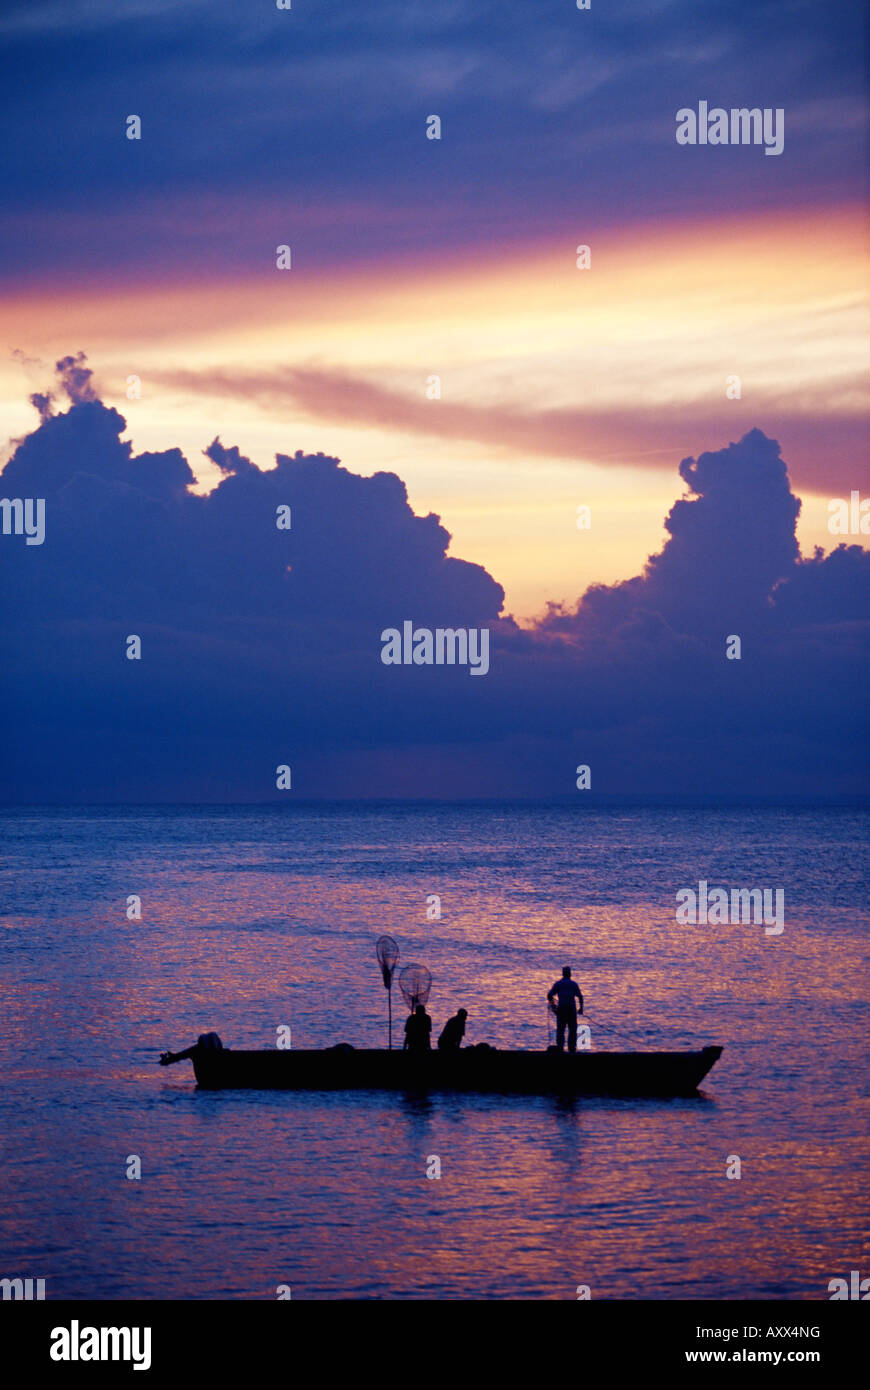 Fishing boat in the Indian Ocean at dawn, island of Zanzibar, Tanzania, East Africa, Africa - Stock Image